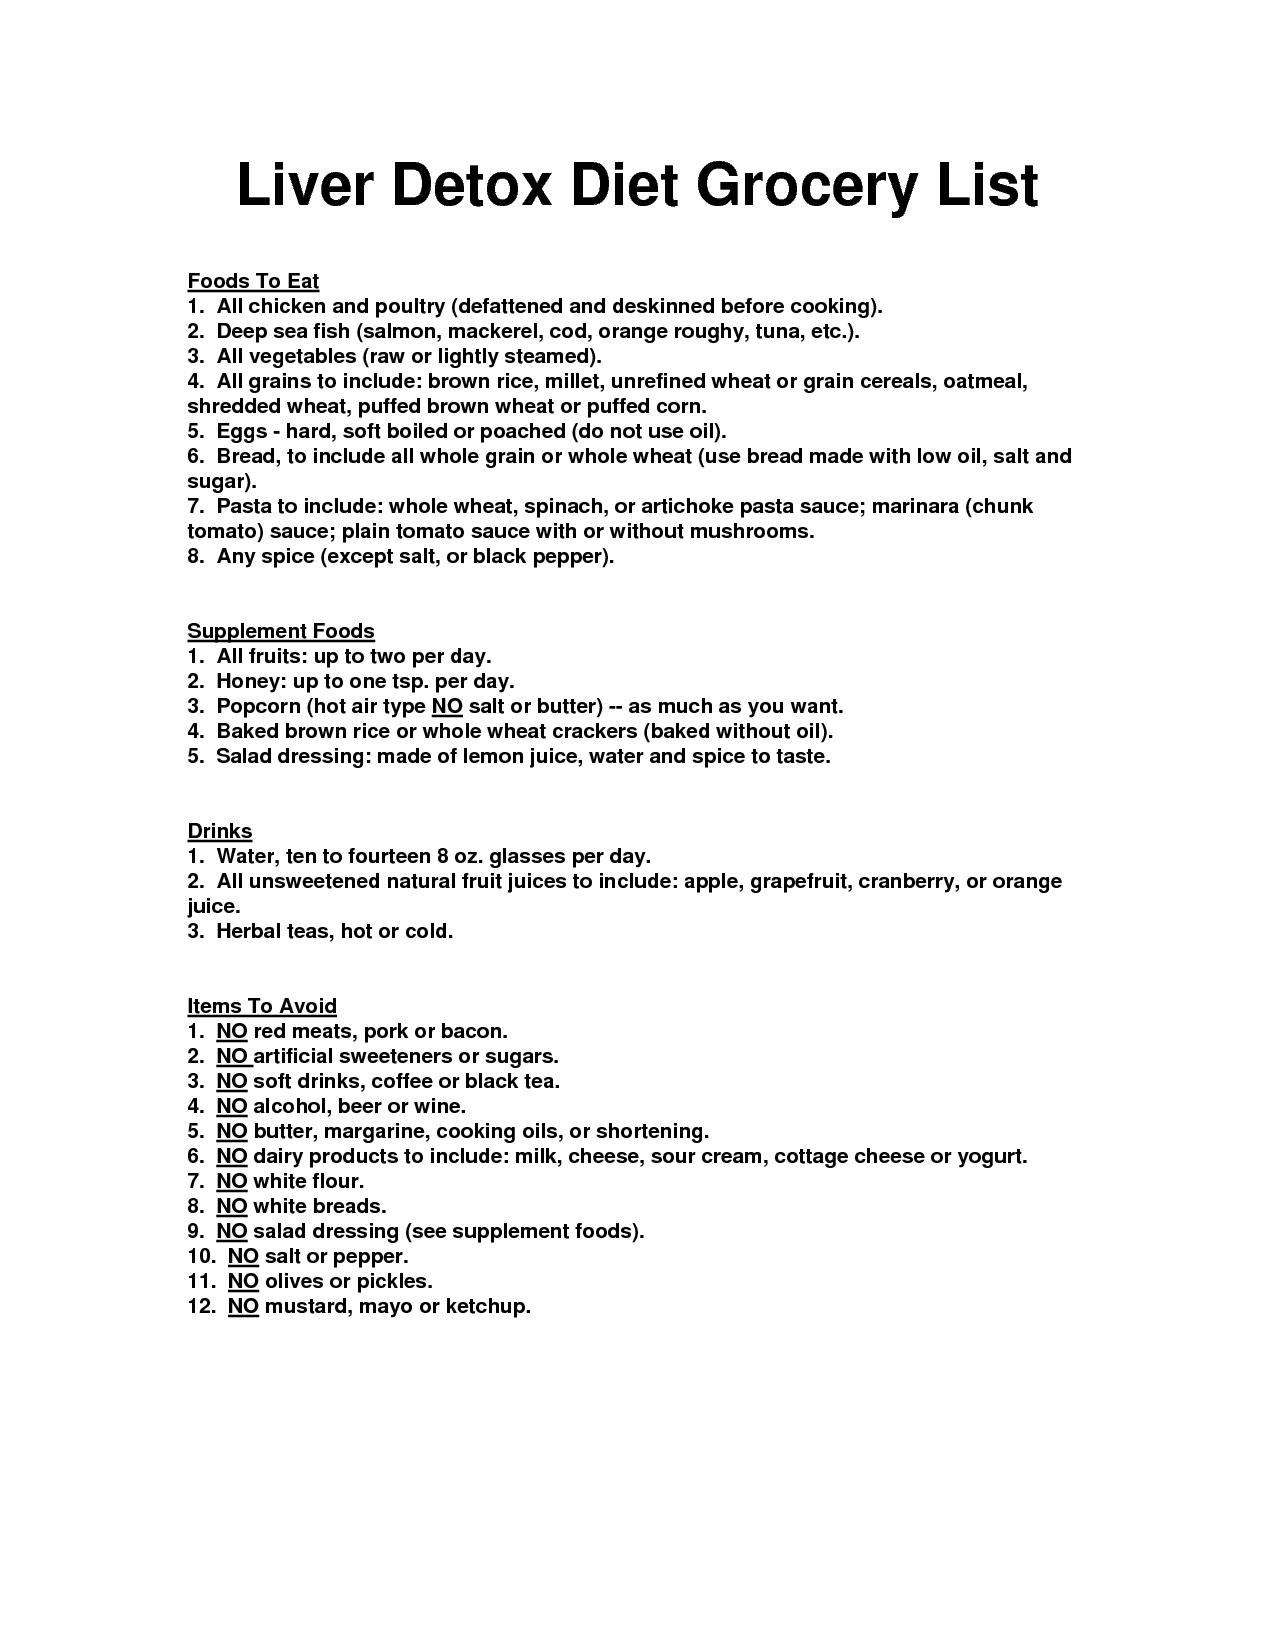 Fatty liver diet criteria advice and options What you want to eat more of plus specifically what  Fatty liver diet criteria advice and options What you want to eat more of plus specifically what  Erika Laposi nbsp  hellip   #advice #criteria #diet #eat #Fatty #Liver #liver detox foods list #options #specifically